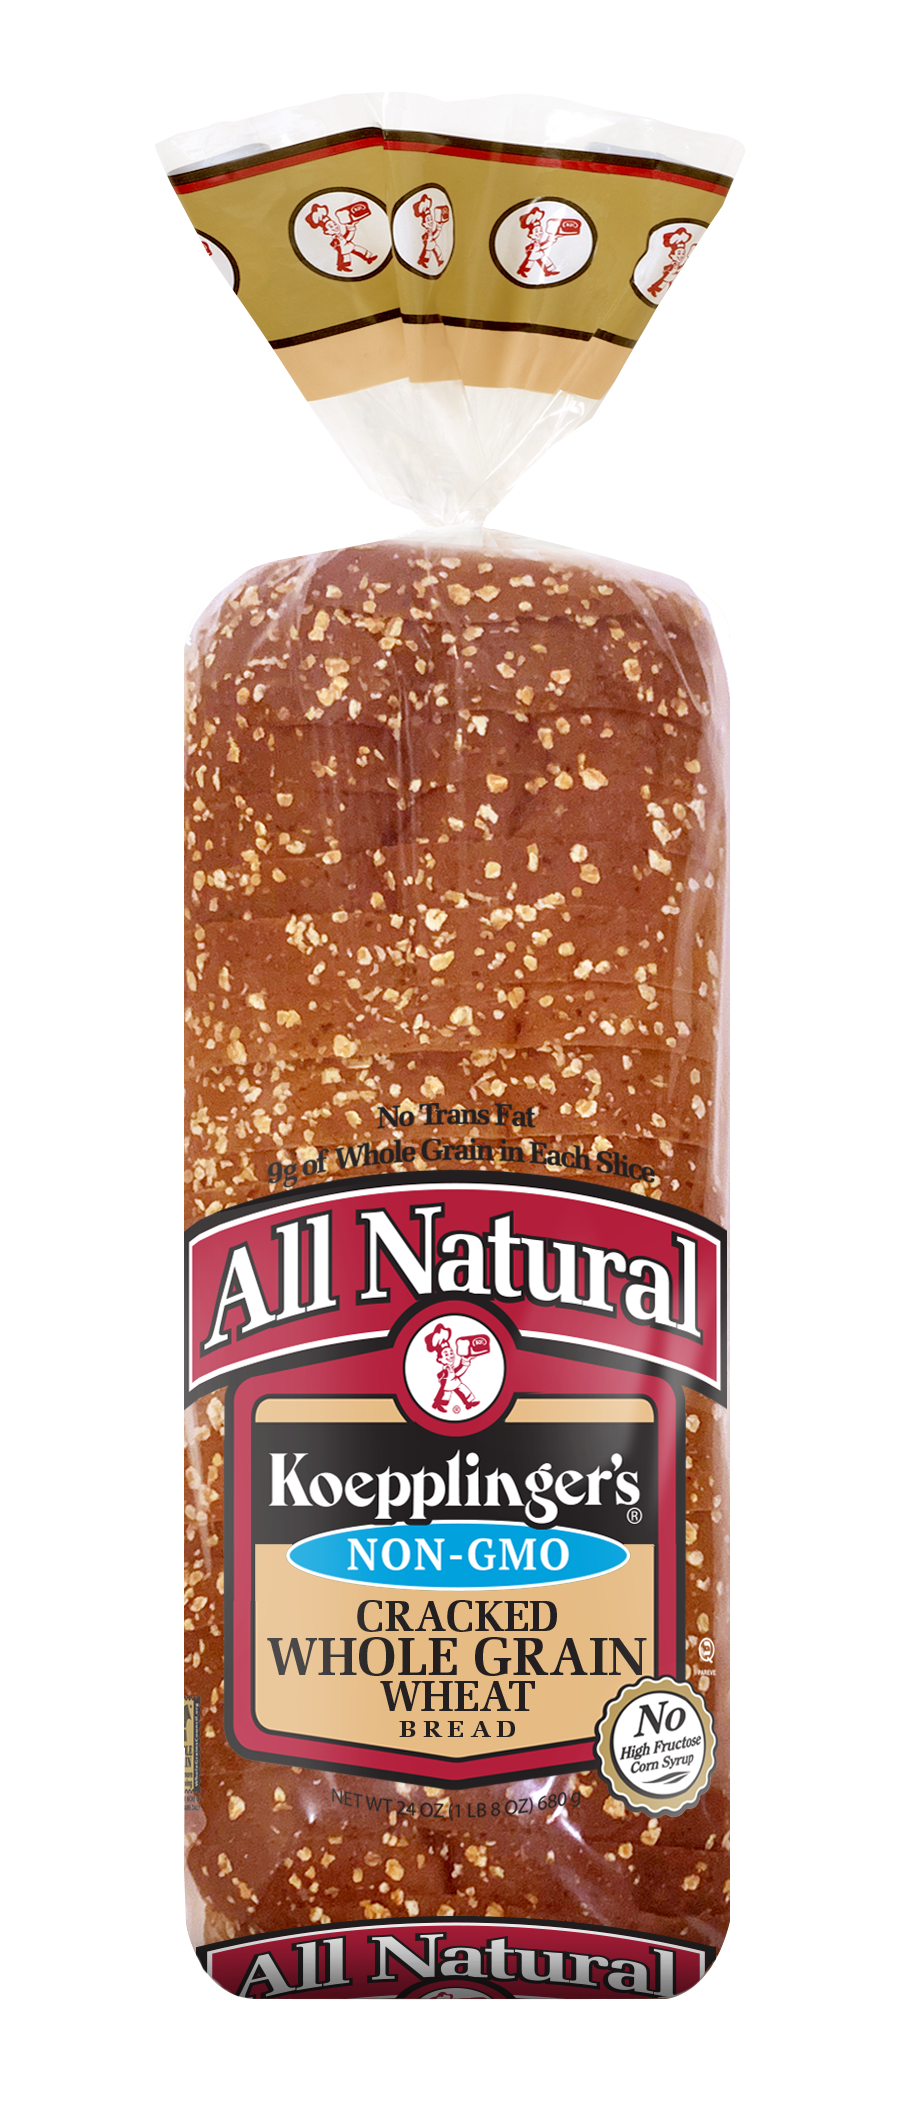 Koepplingers Cracked WG Wheat Bread_OutTRANS.png